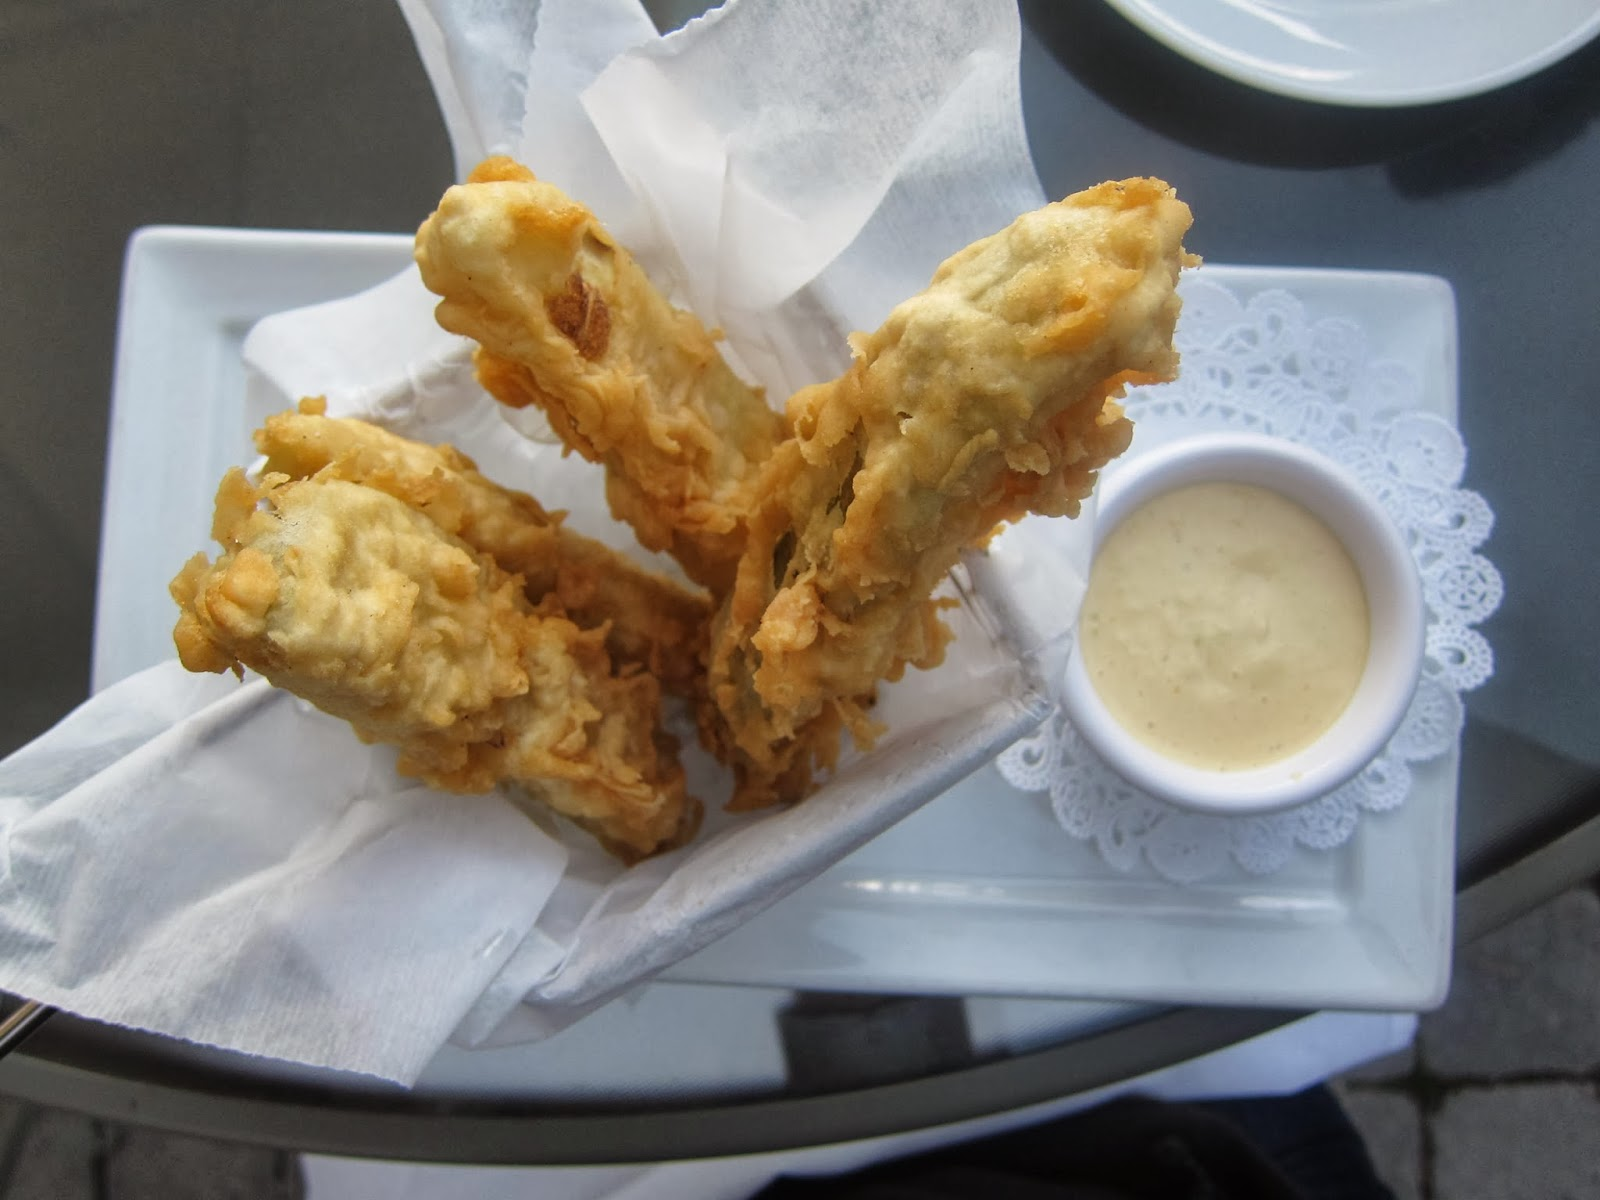 Fried Pickles | The Economical Eater